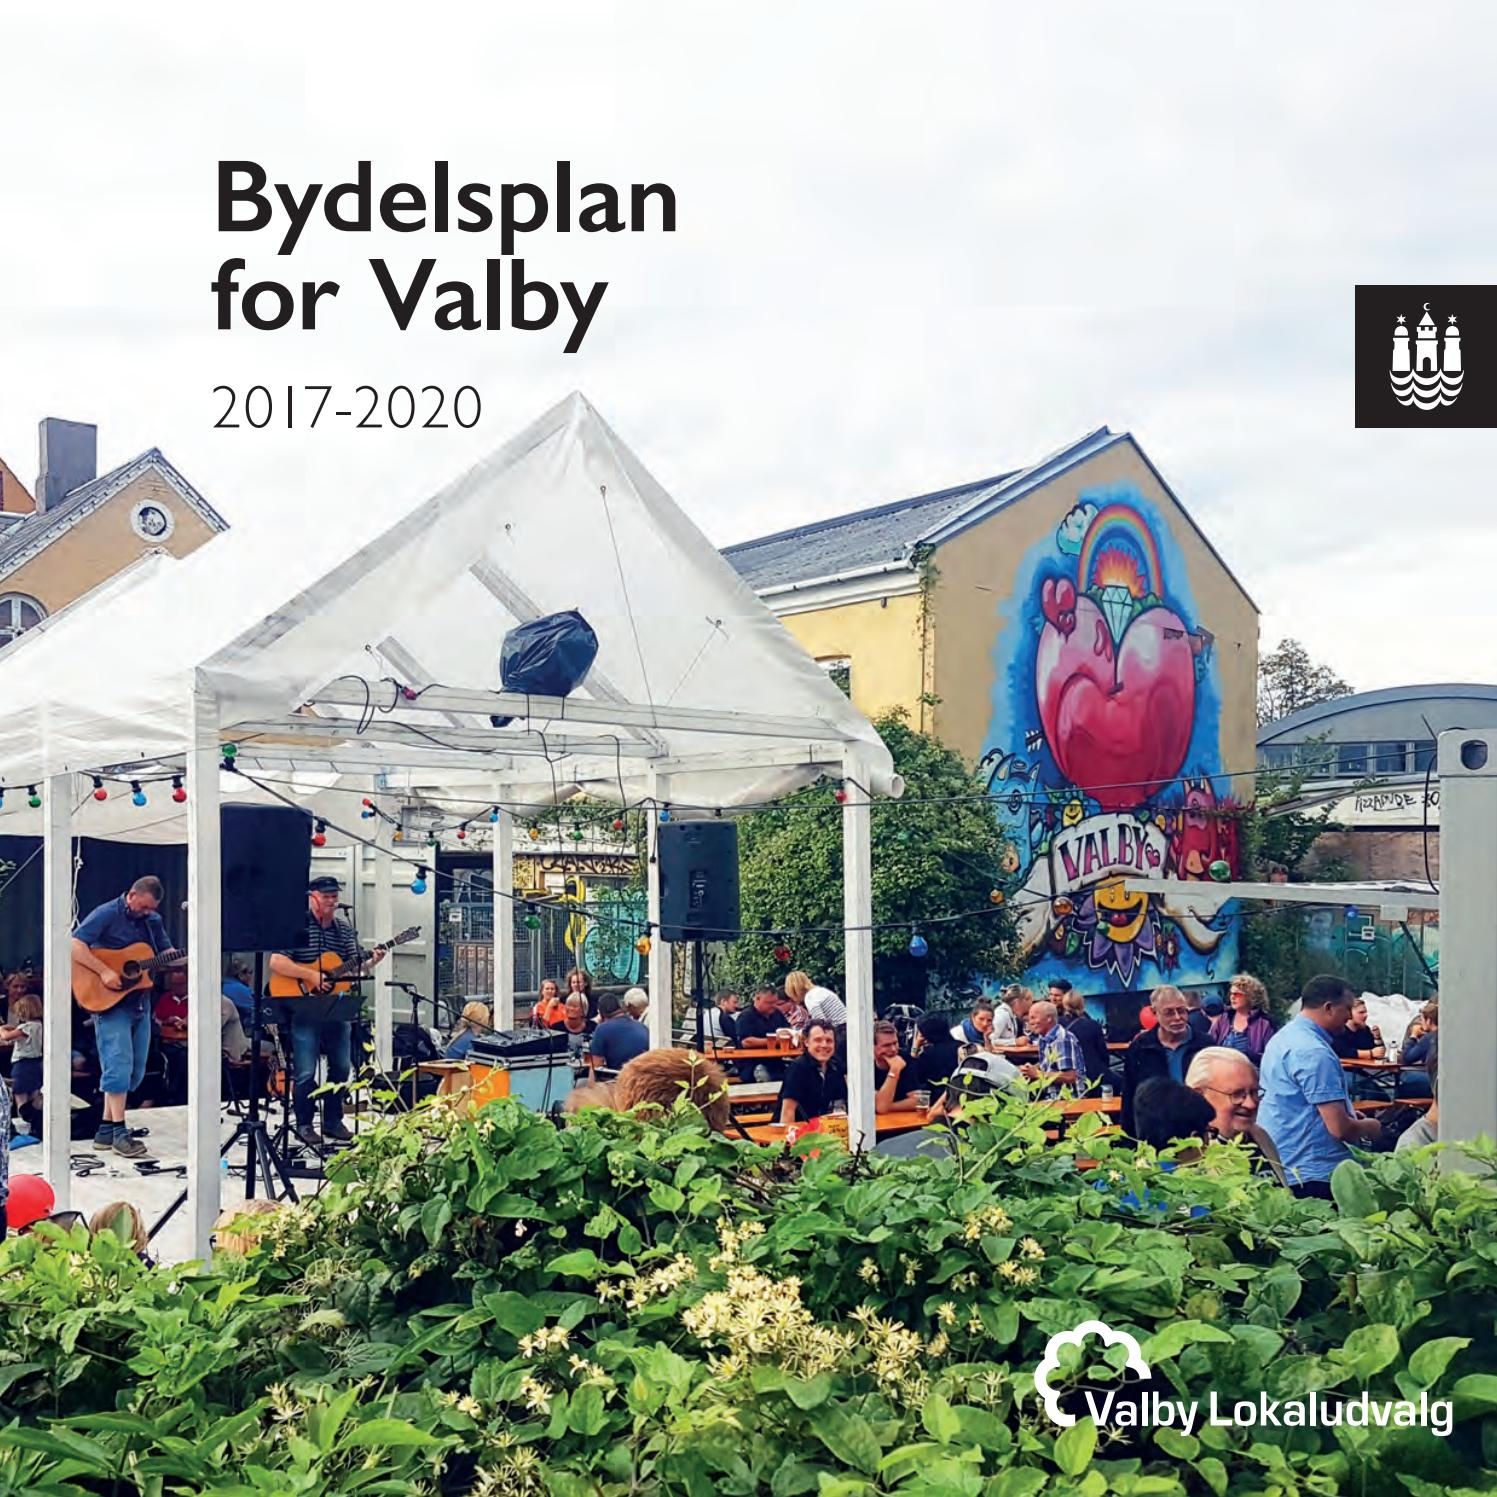 Bydelsplan For Valby 2017 202 By Valby Lokaludvalg Issuu